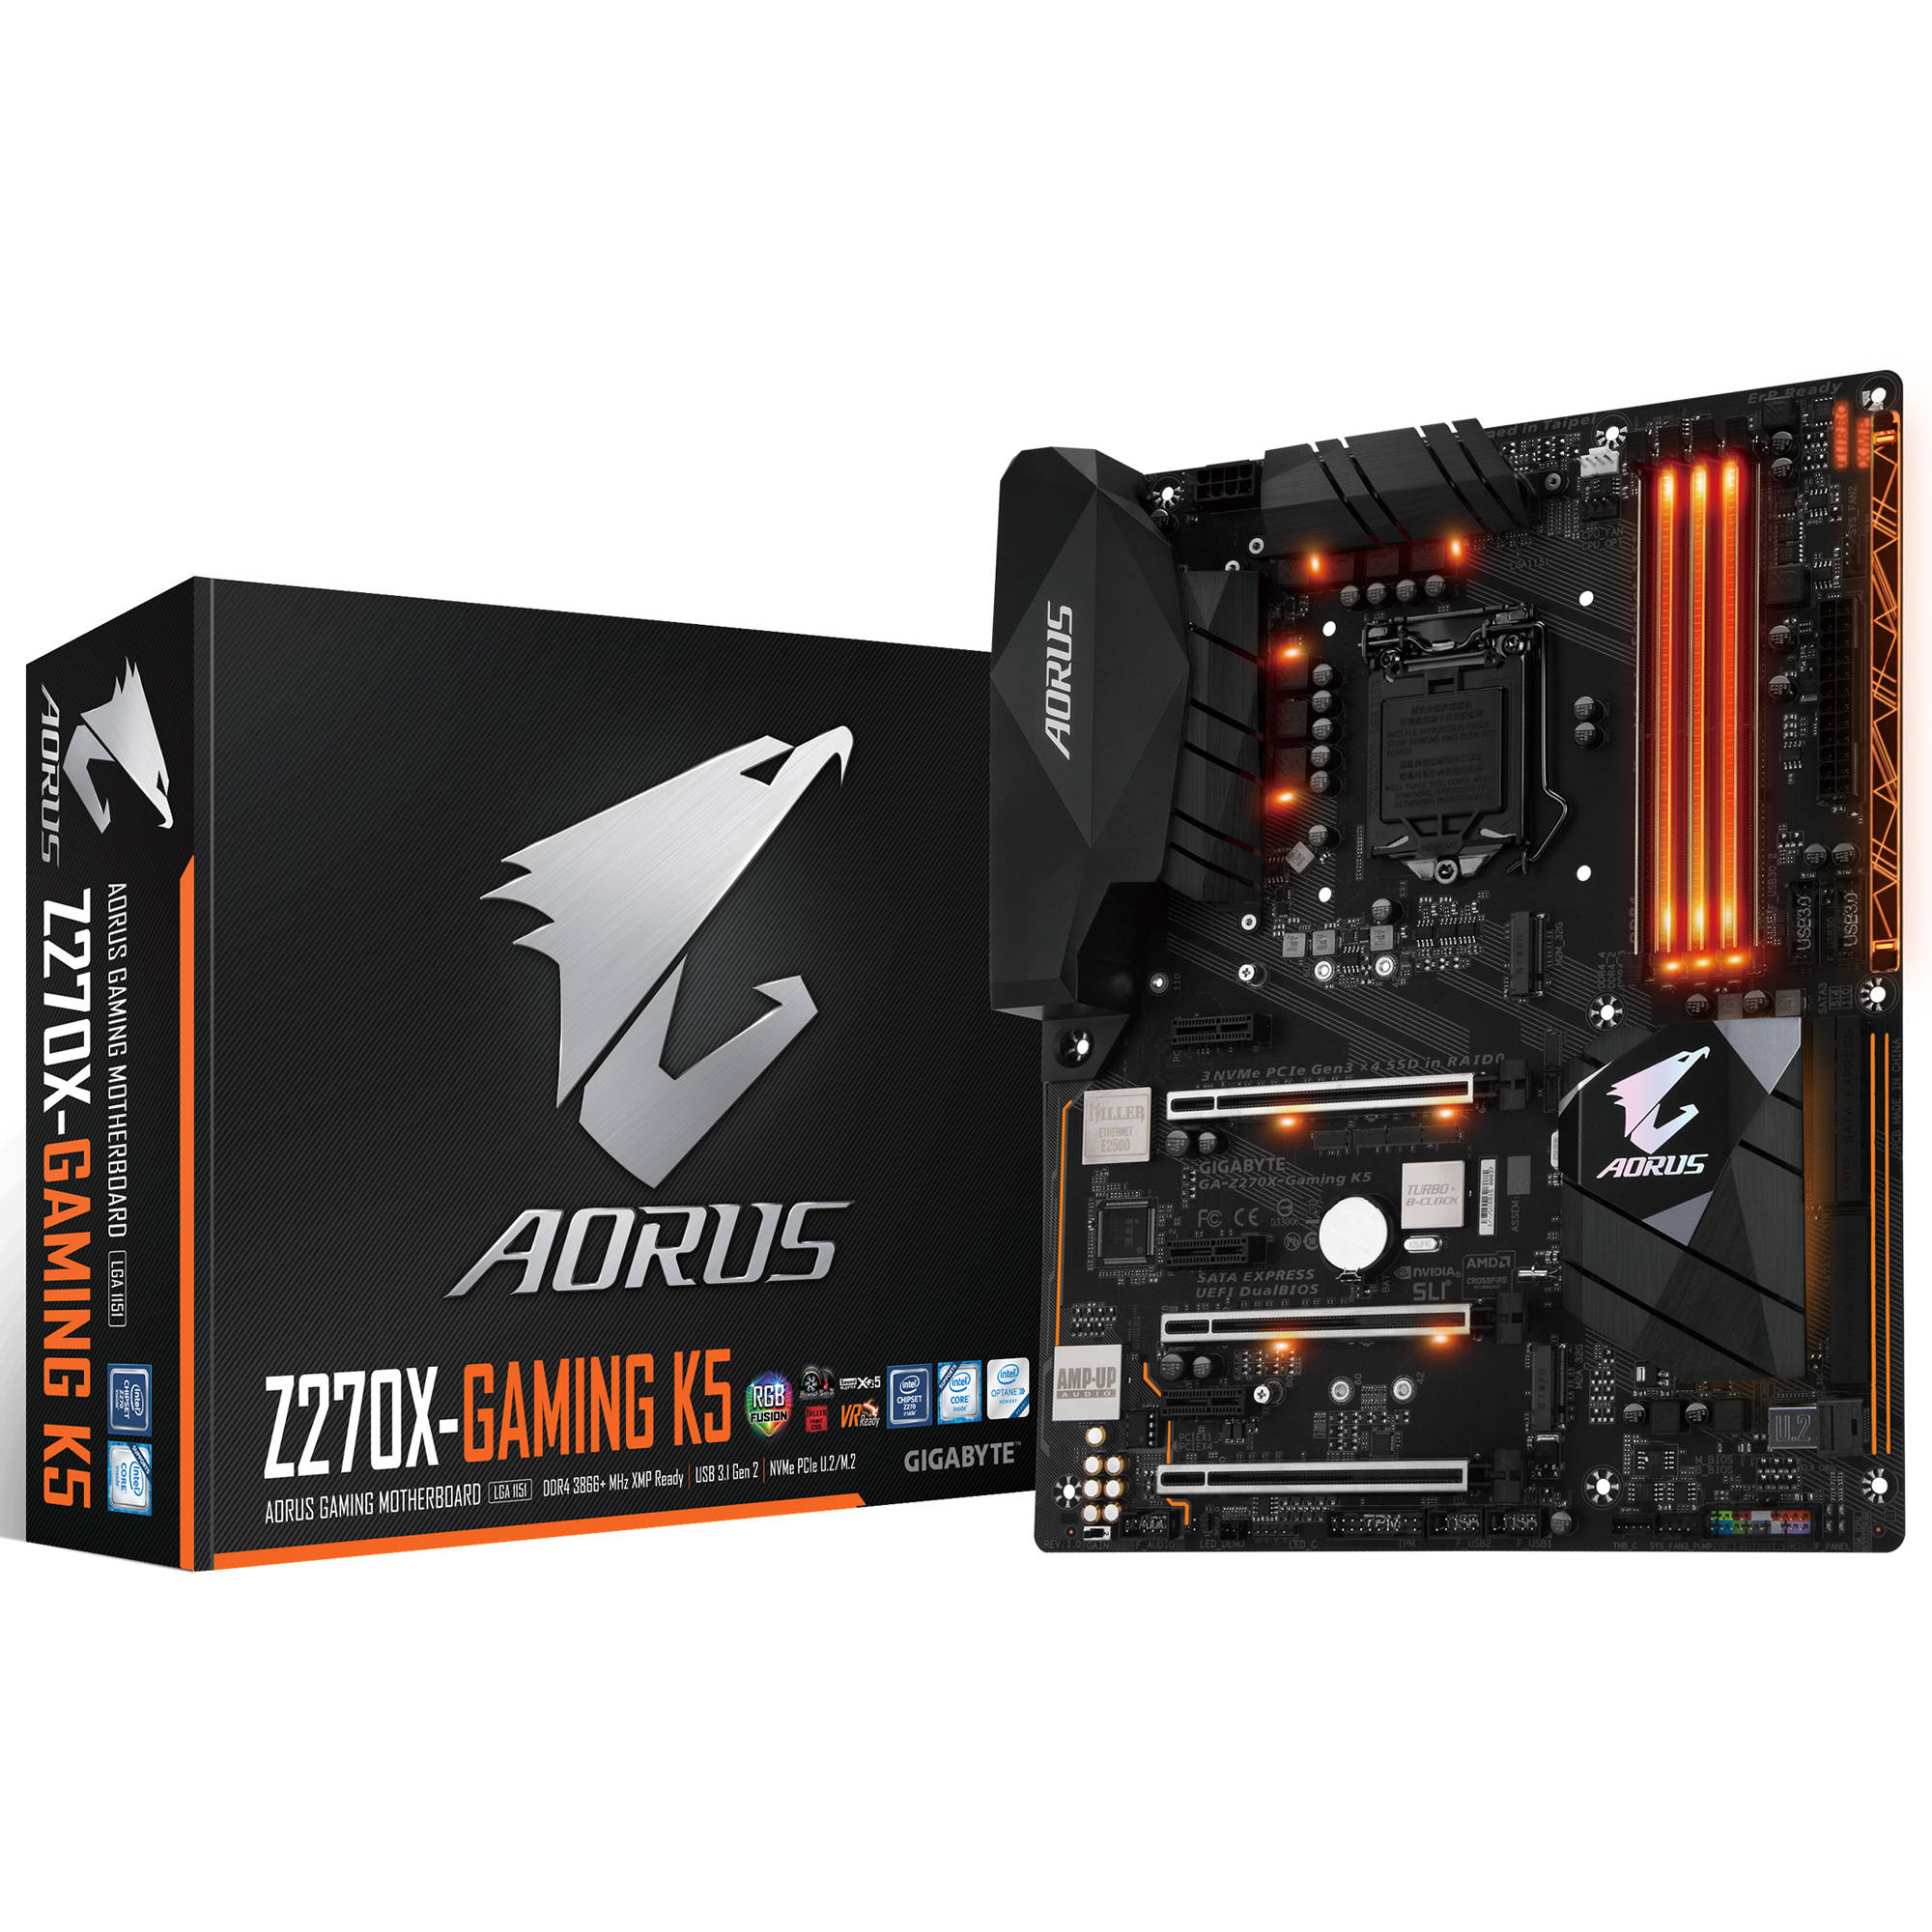 GIGABYTE Aorus GA-Z270X-Gaming K5, Intel 7th Gen Kabylake, RGB Fusion, Smart Fan 5